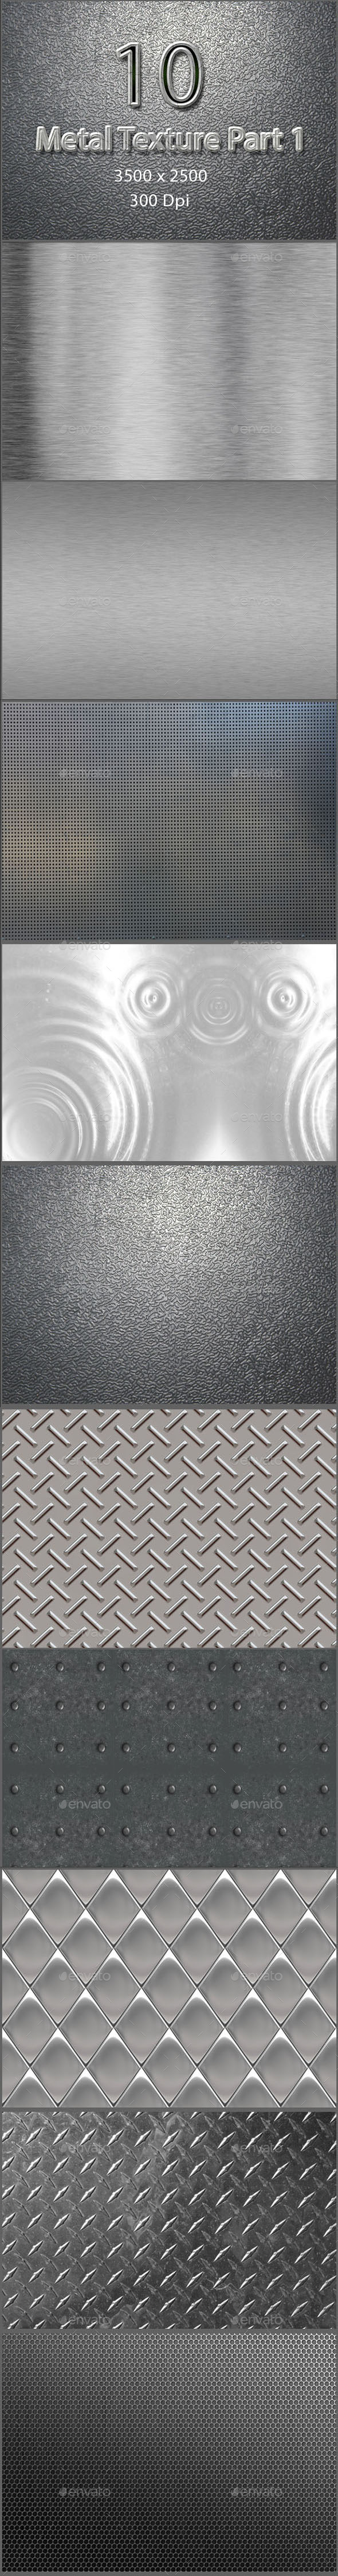 GraphicRiver 10 Background Metal Texture Part 1 9543956